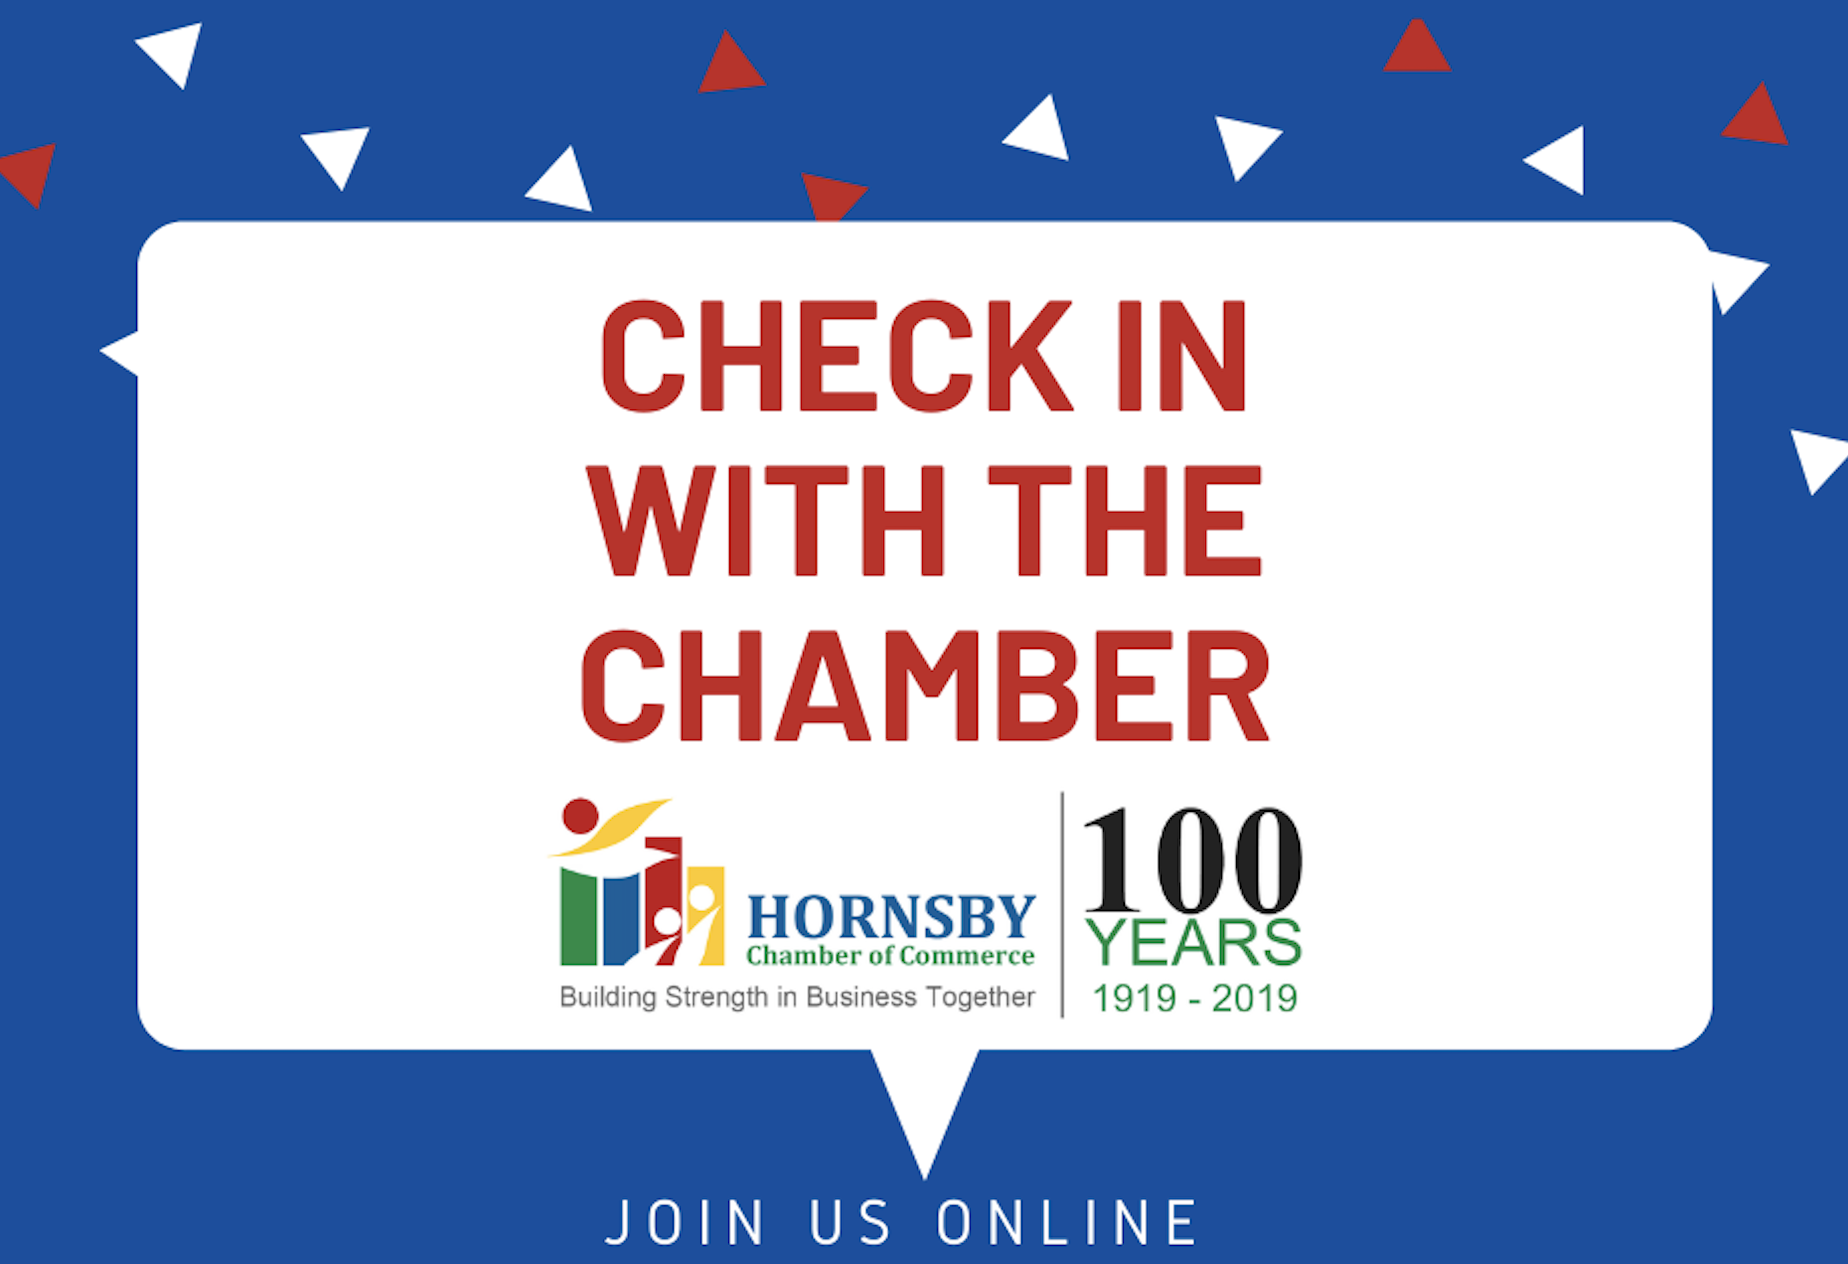 Hornsby Chamber of Commerce ~ Check In with the Chamber... ONLINE!